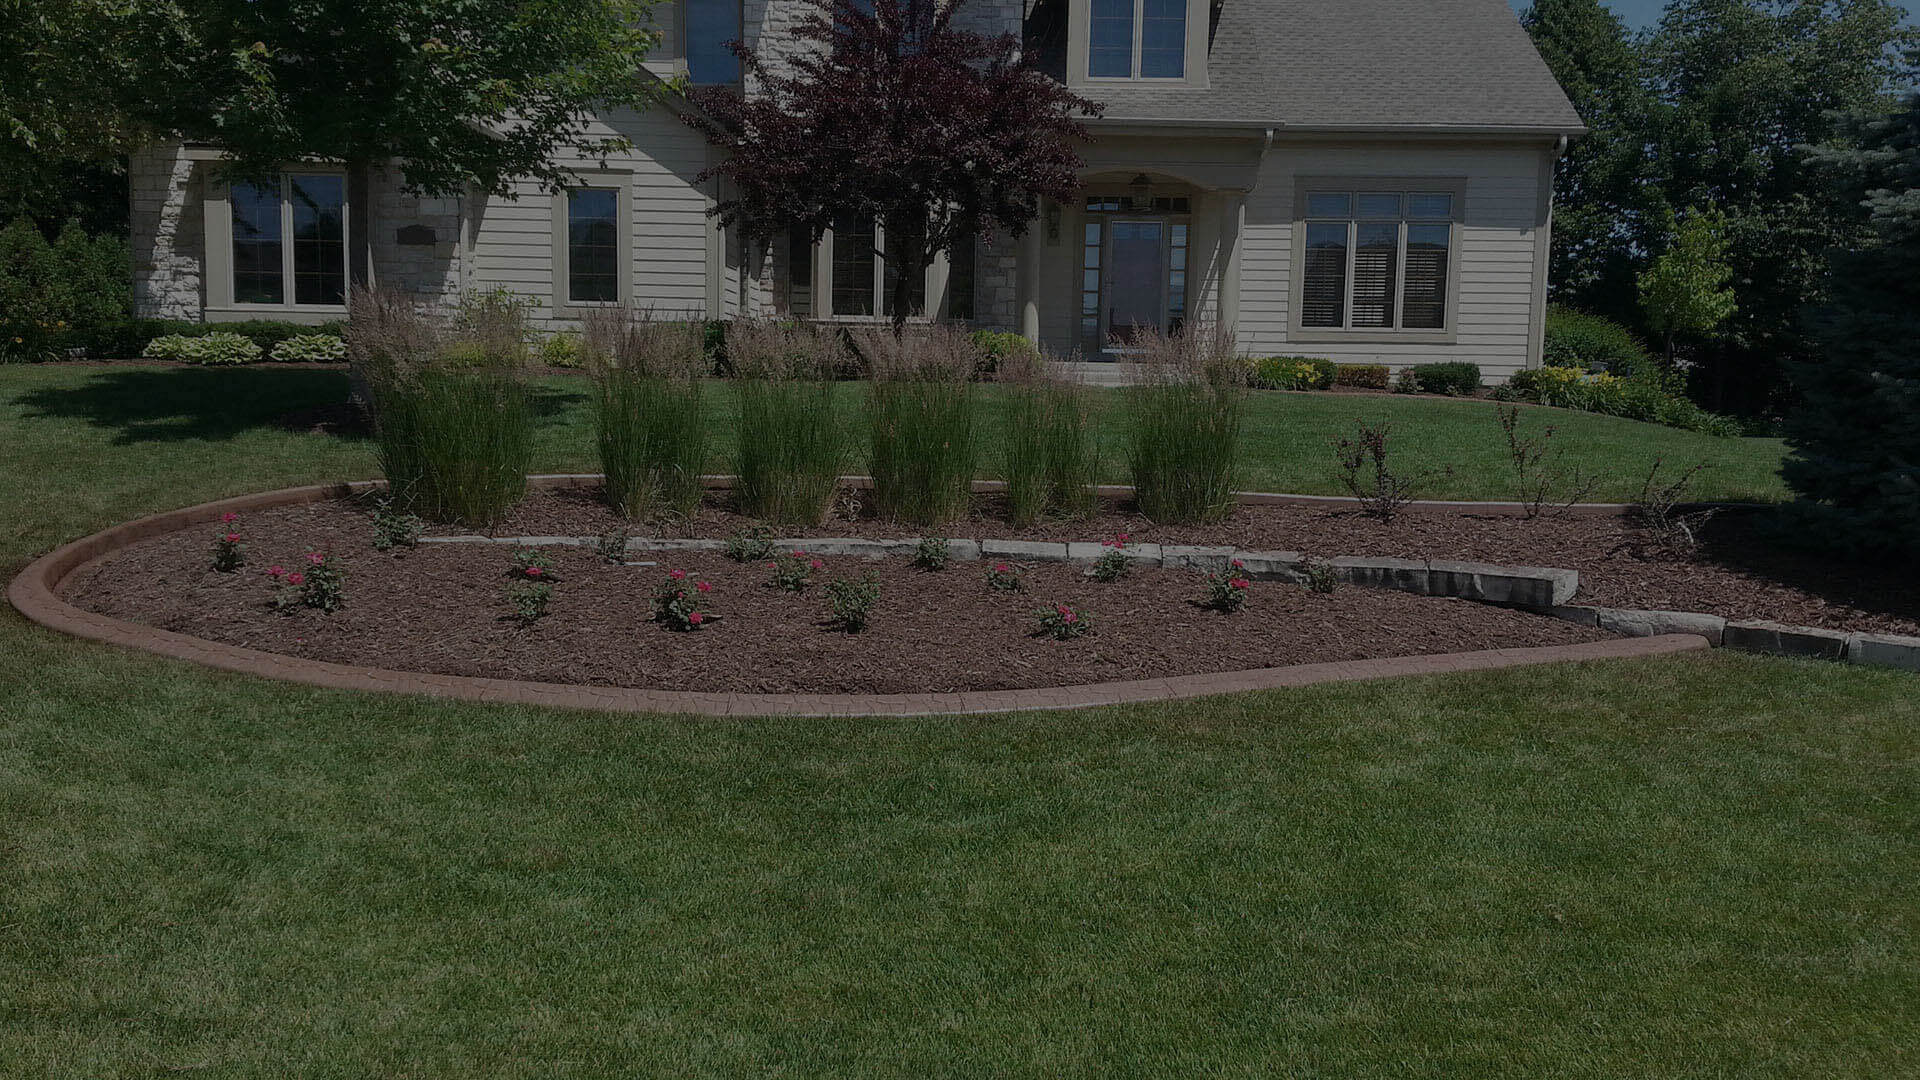 JL Property Services, LLC Fertilizing, Landscaping and Hardscapes slide 1